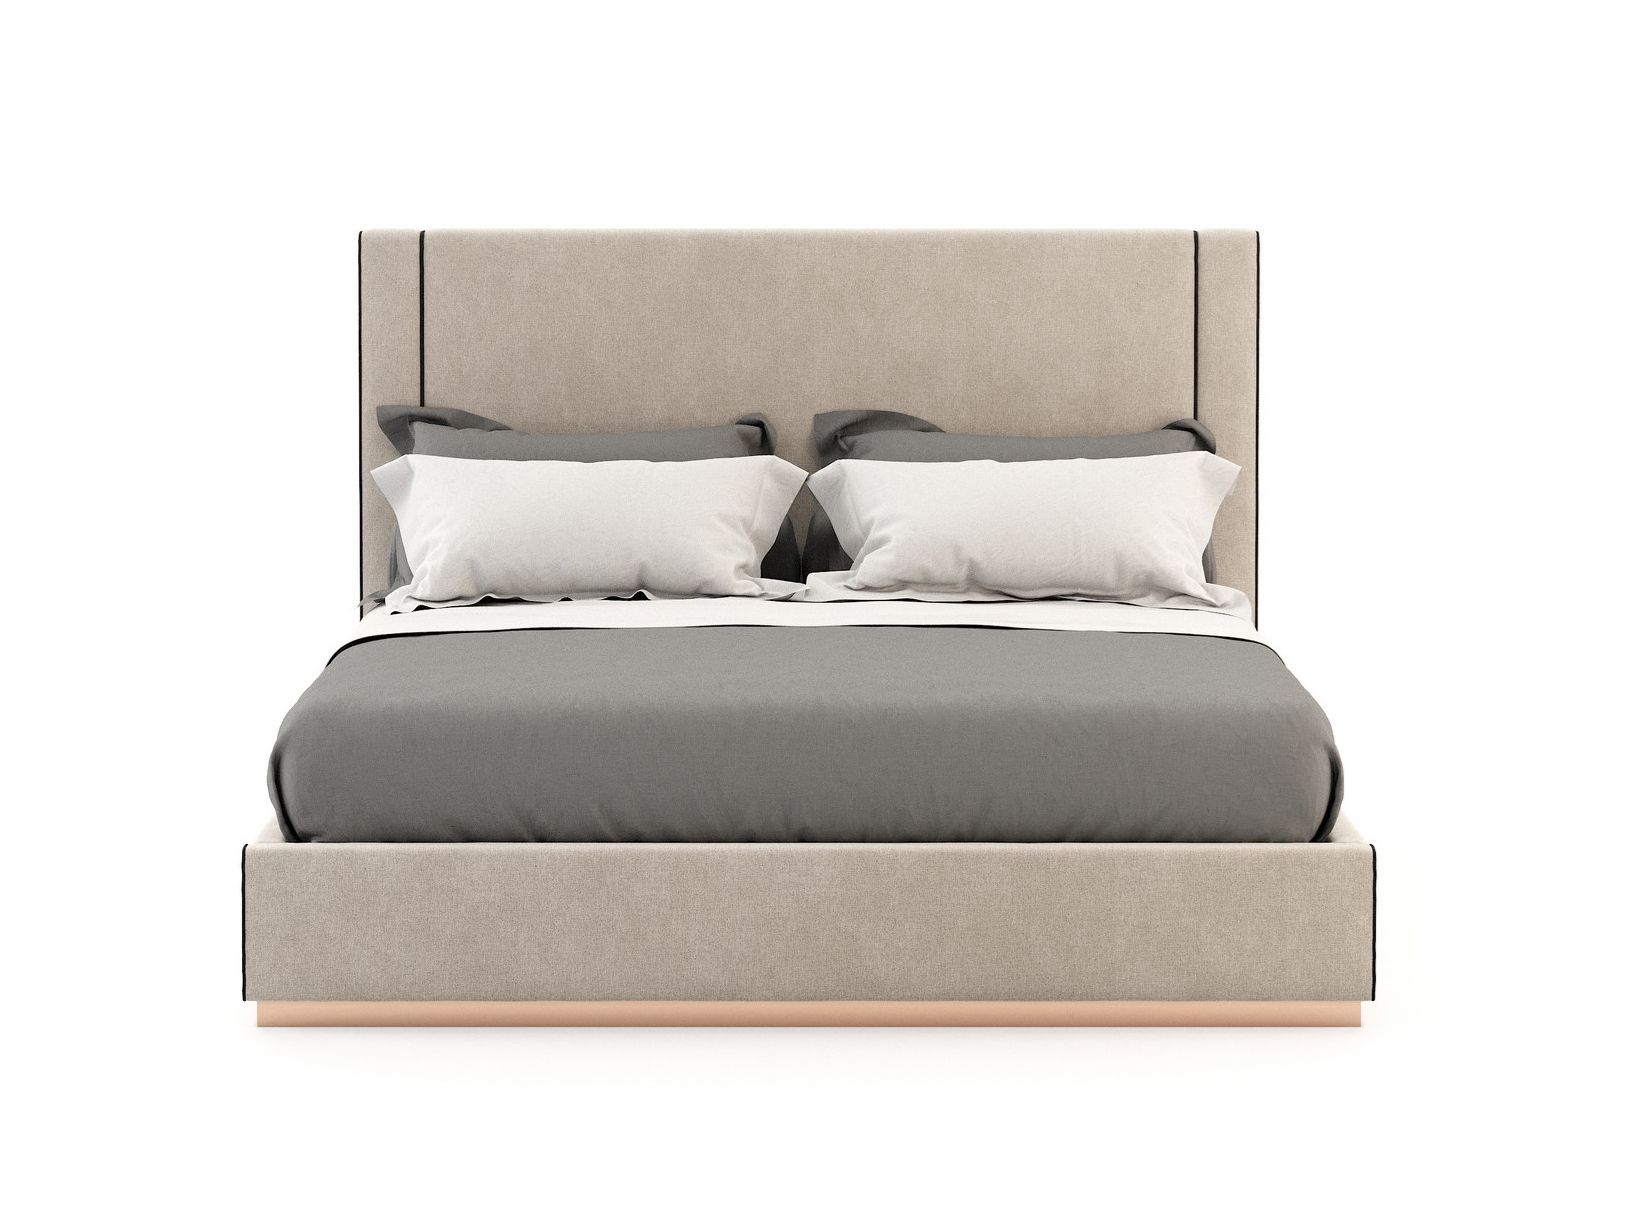 Upholstered Fabric Bed With High Headboard Corin By Laskasas Bed